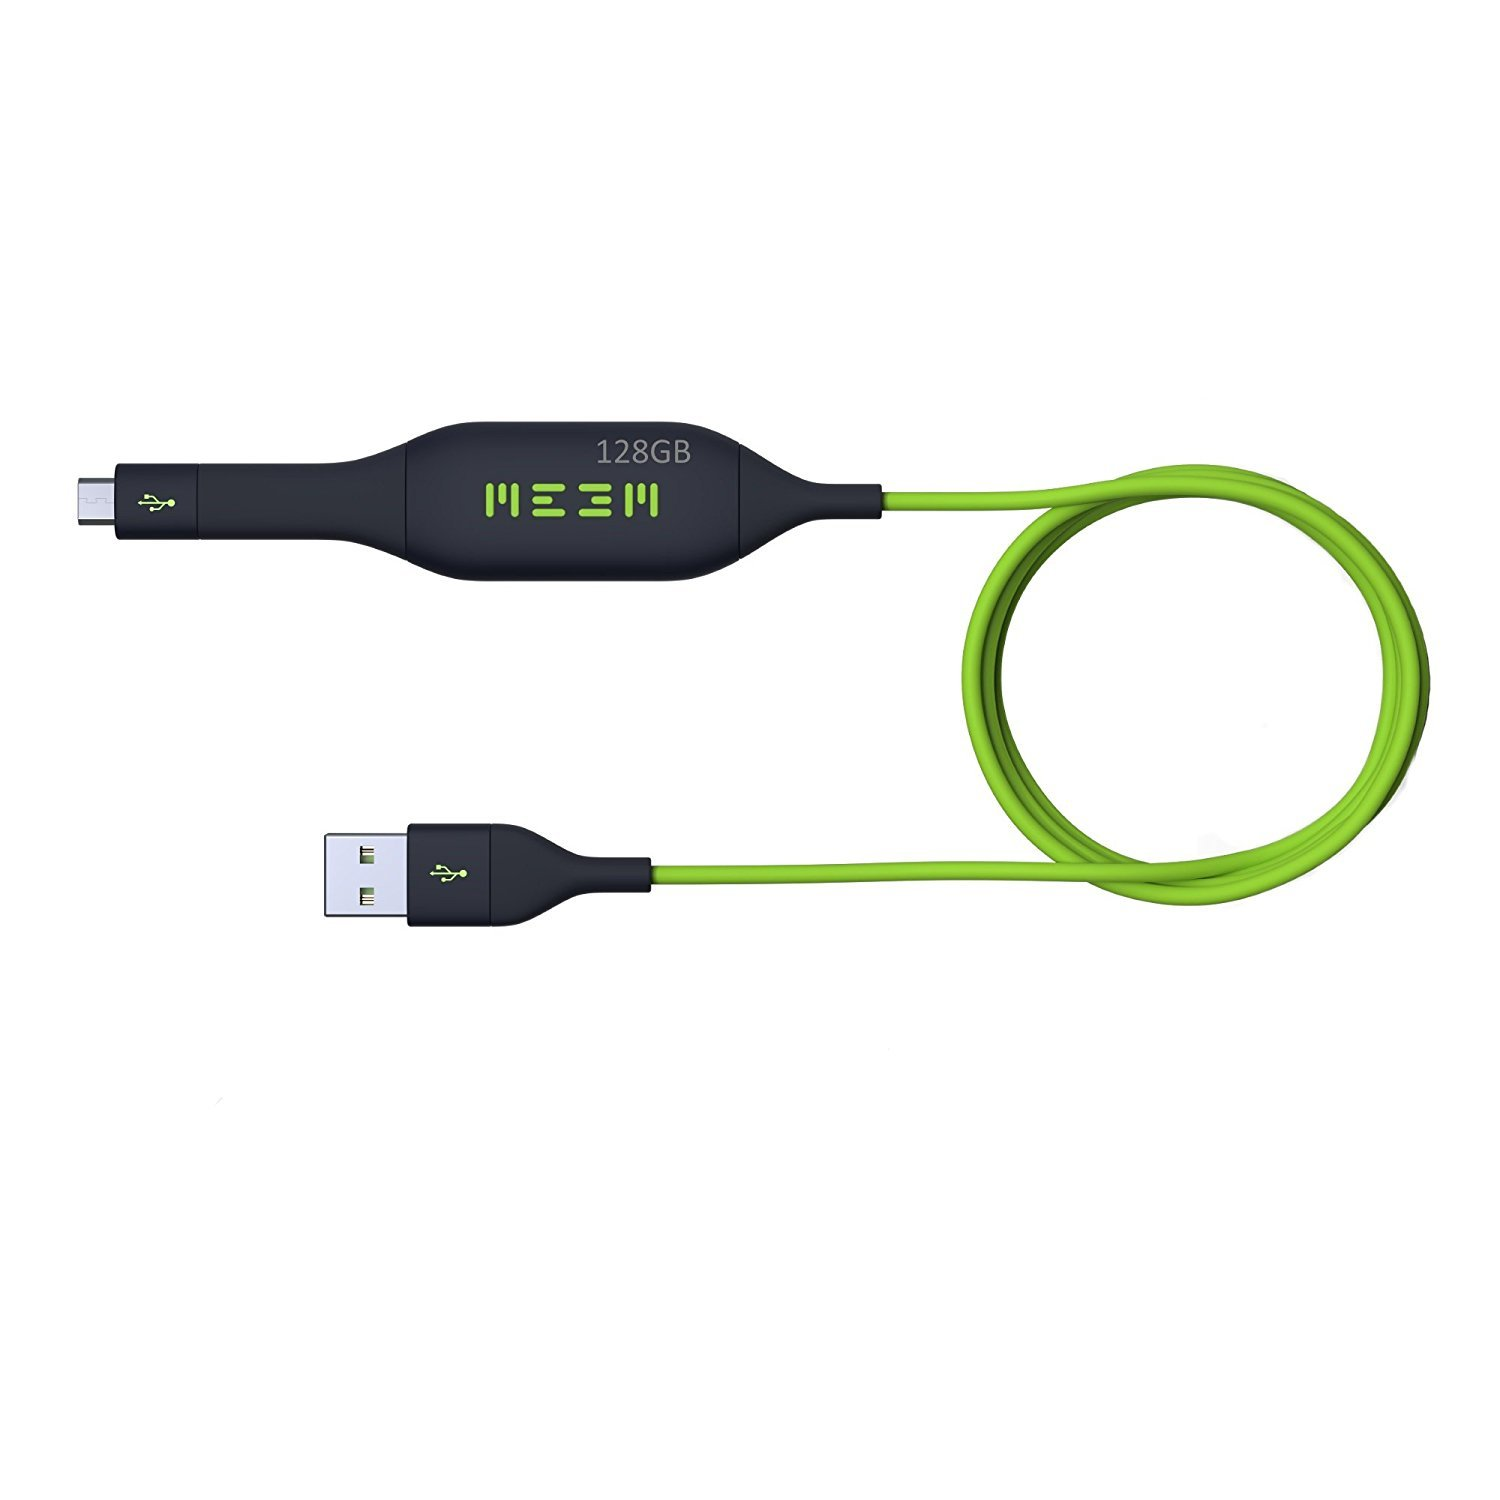 MEEM Android 128GB The Charger that Automatically Backs Up your Phone or Tablet on to the Cable